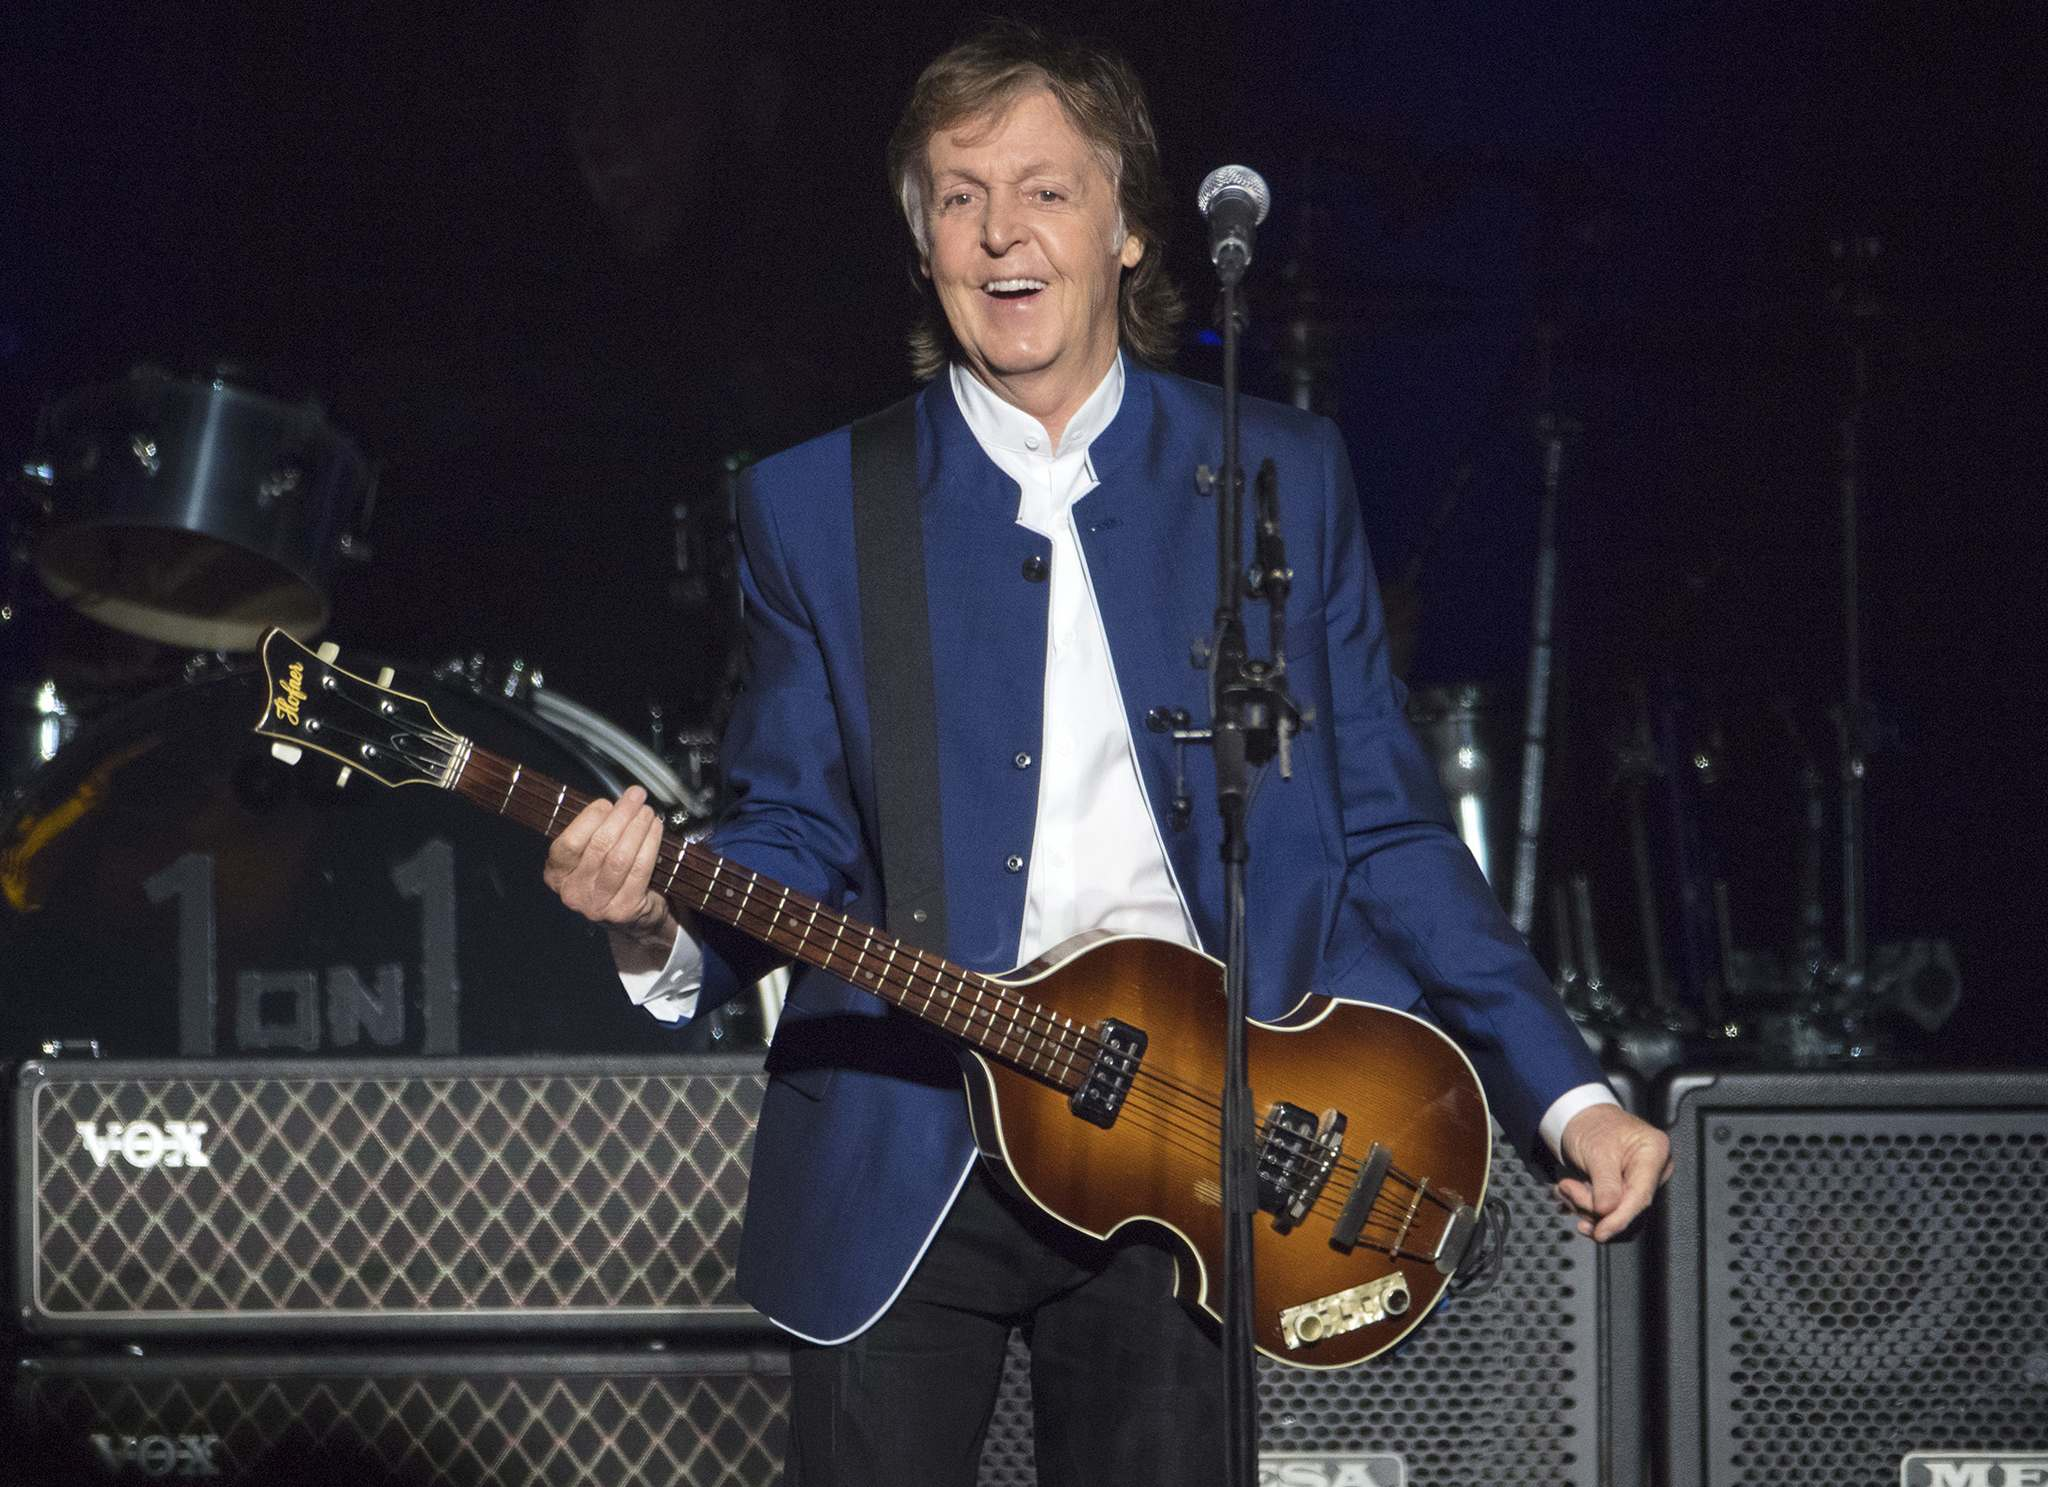 Scott Audette / The Associated Press files</p><p>Sir Paul McCartney will promote his new album, Egypt Station, at the Winnipeg concert.</p>